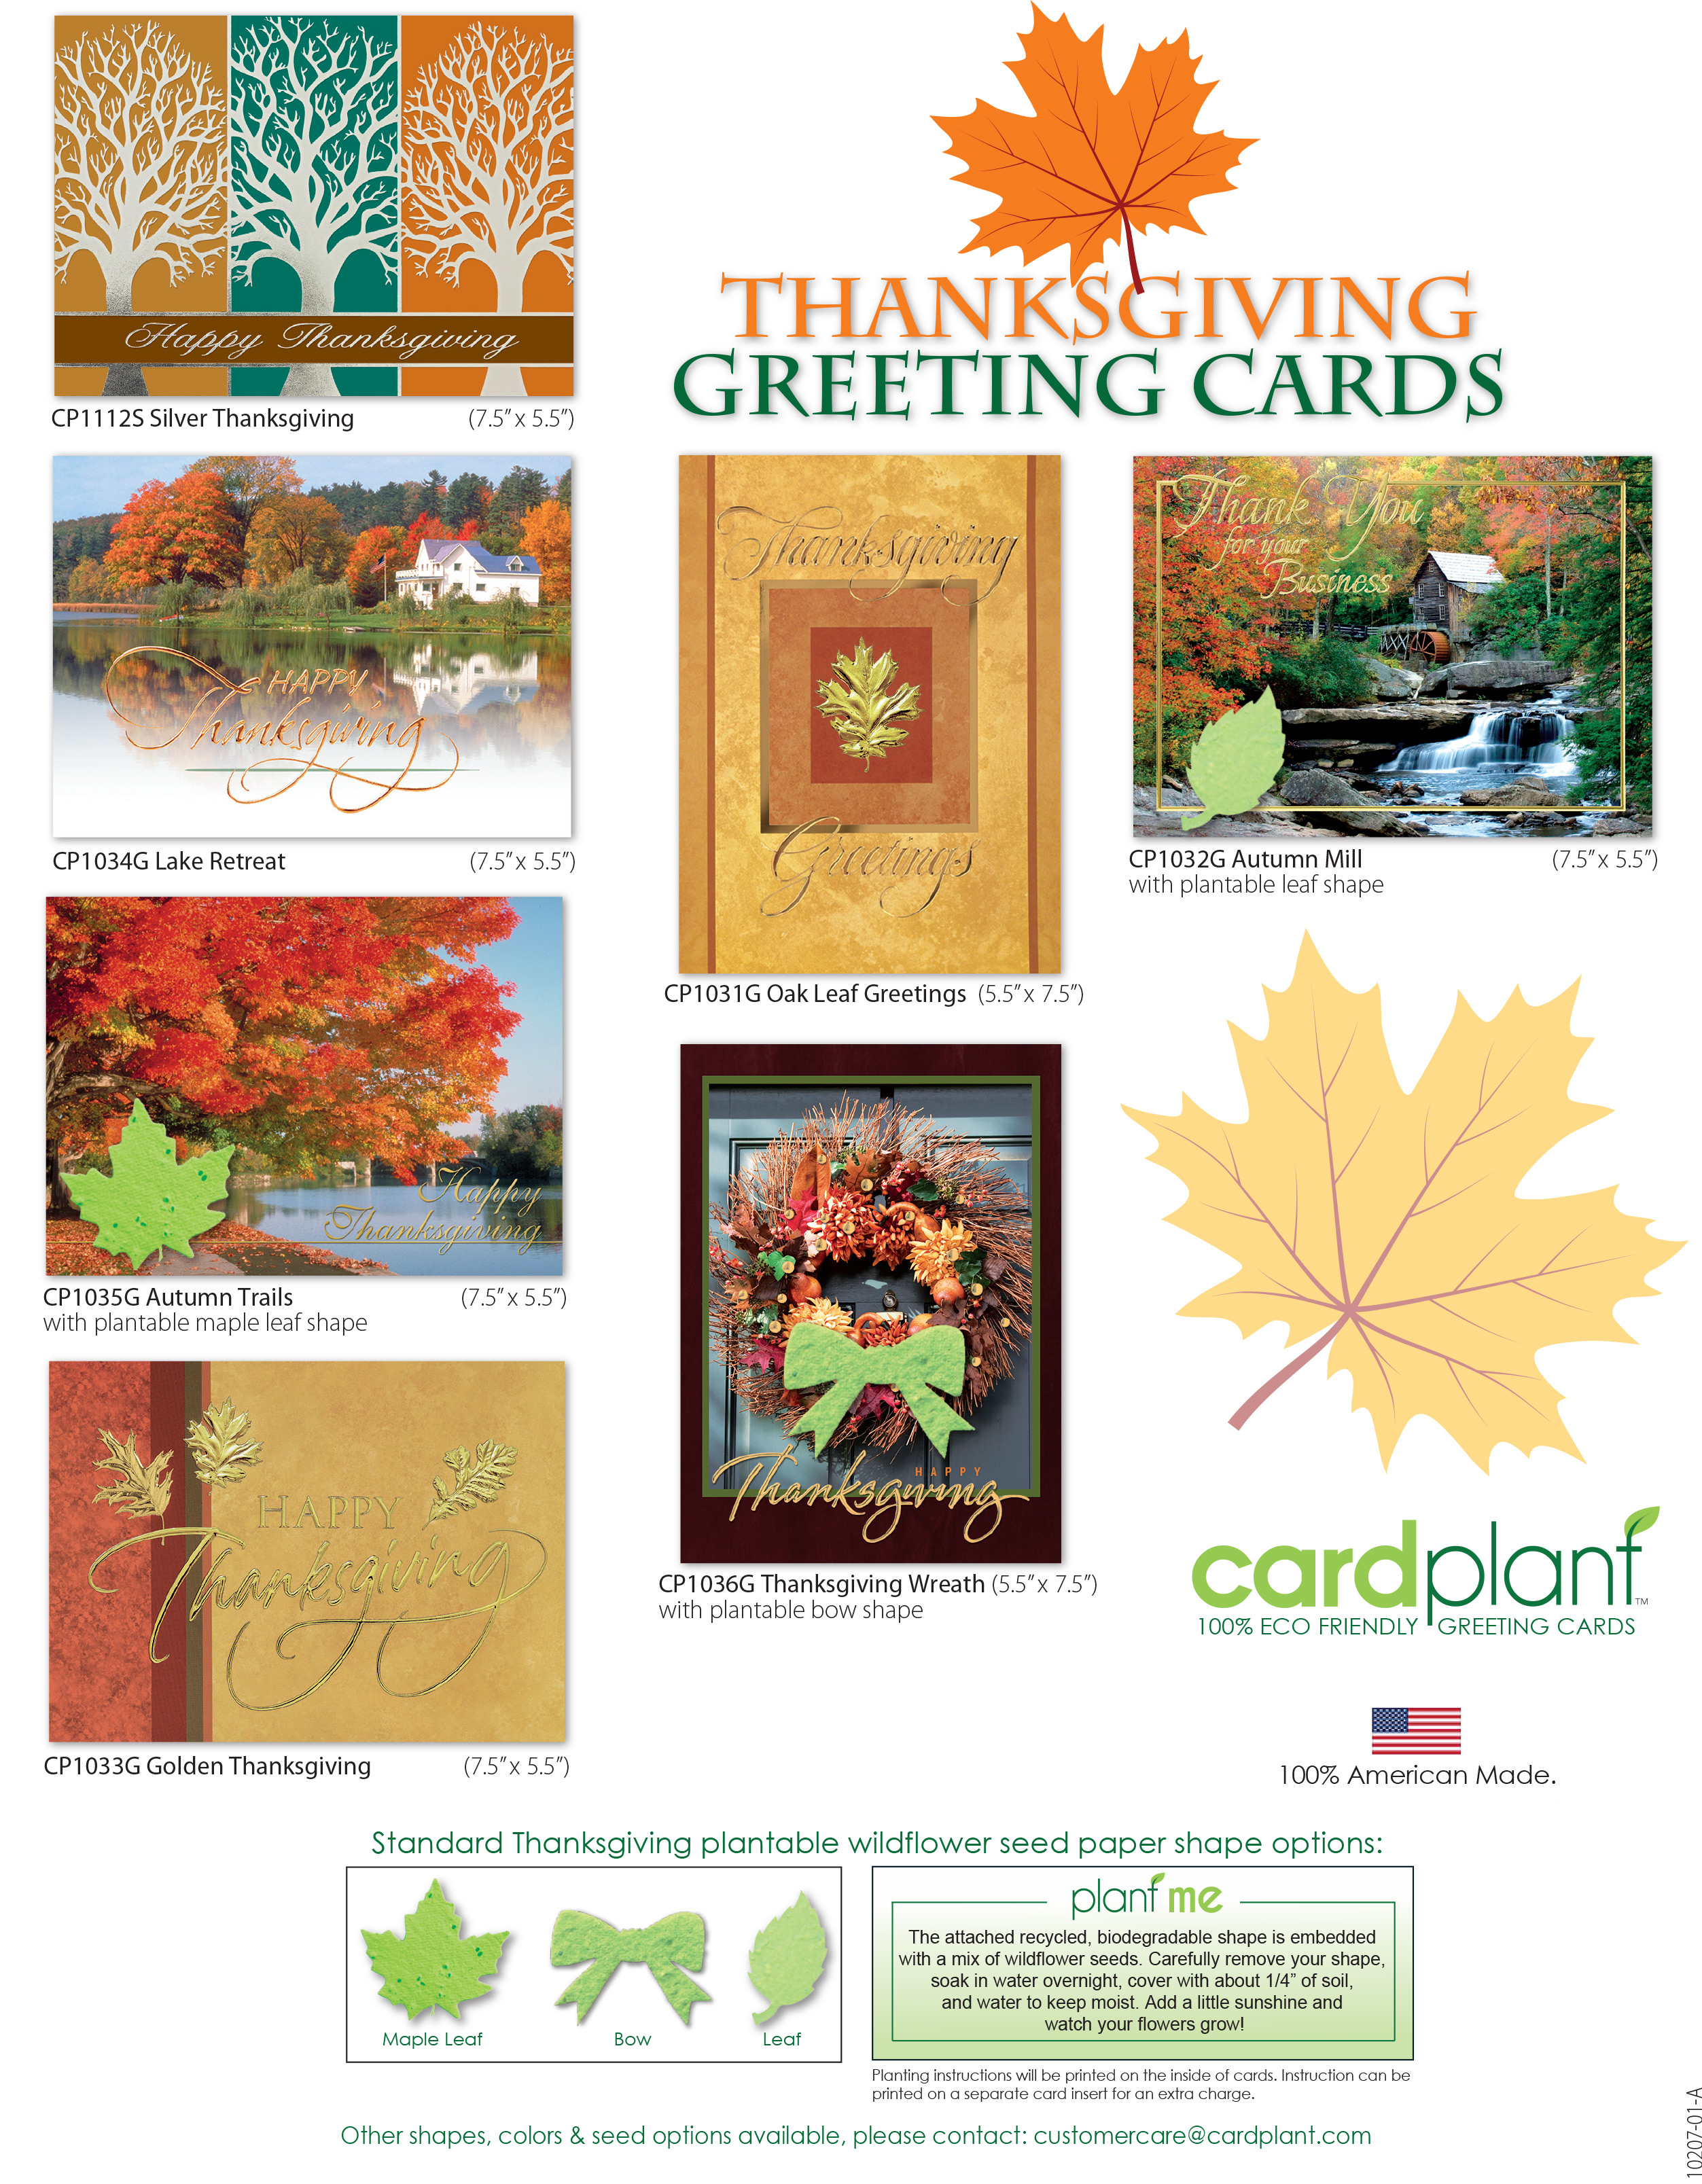 Holiday Cards| Cardplant